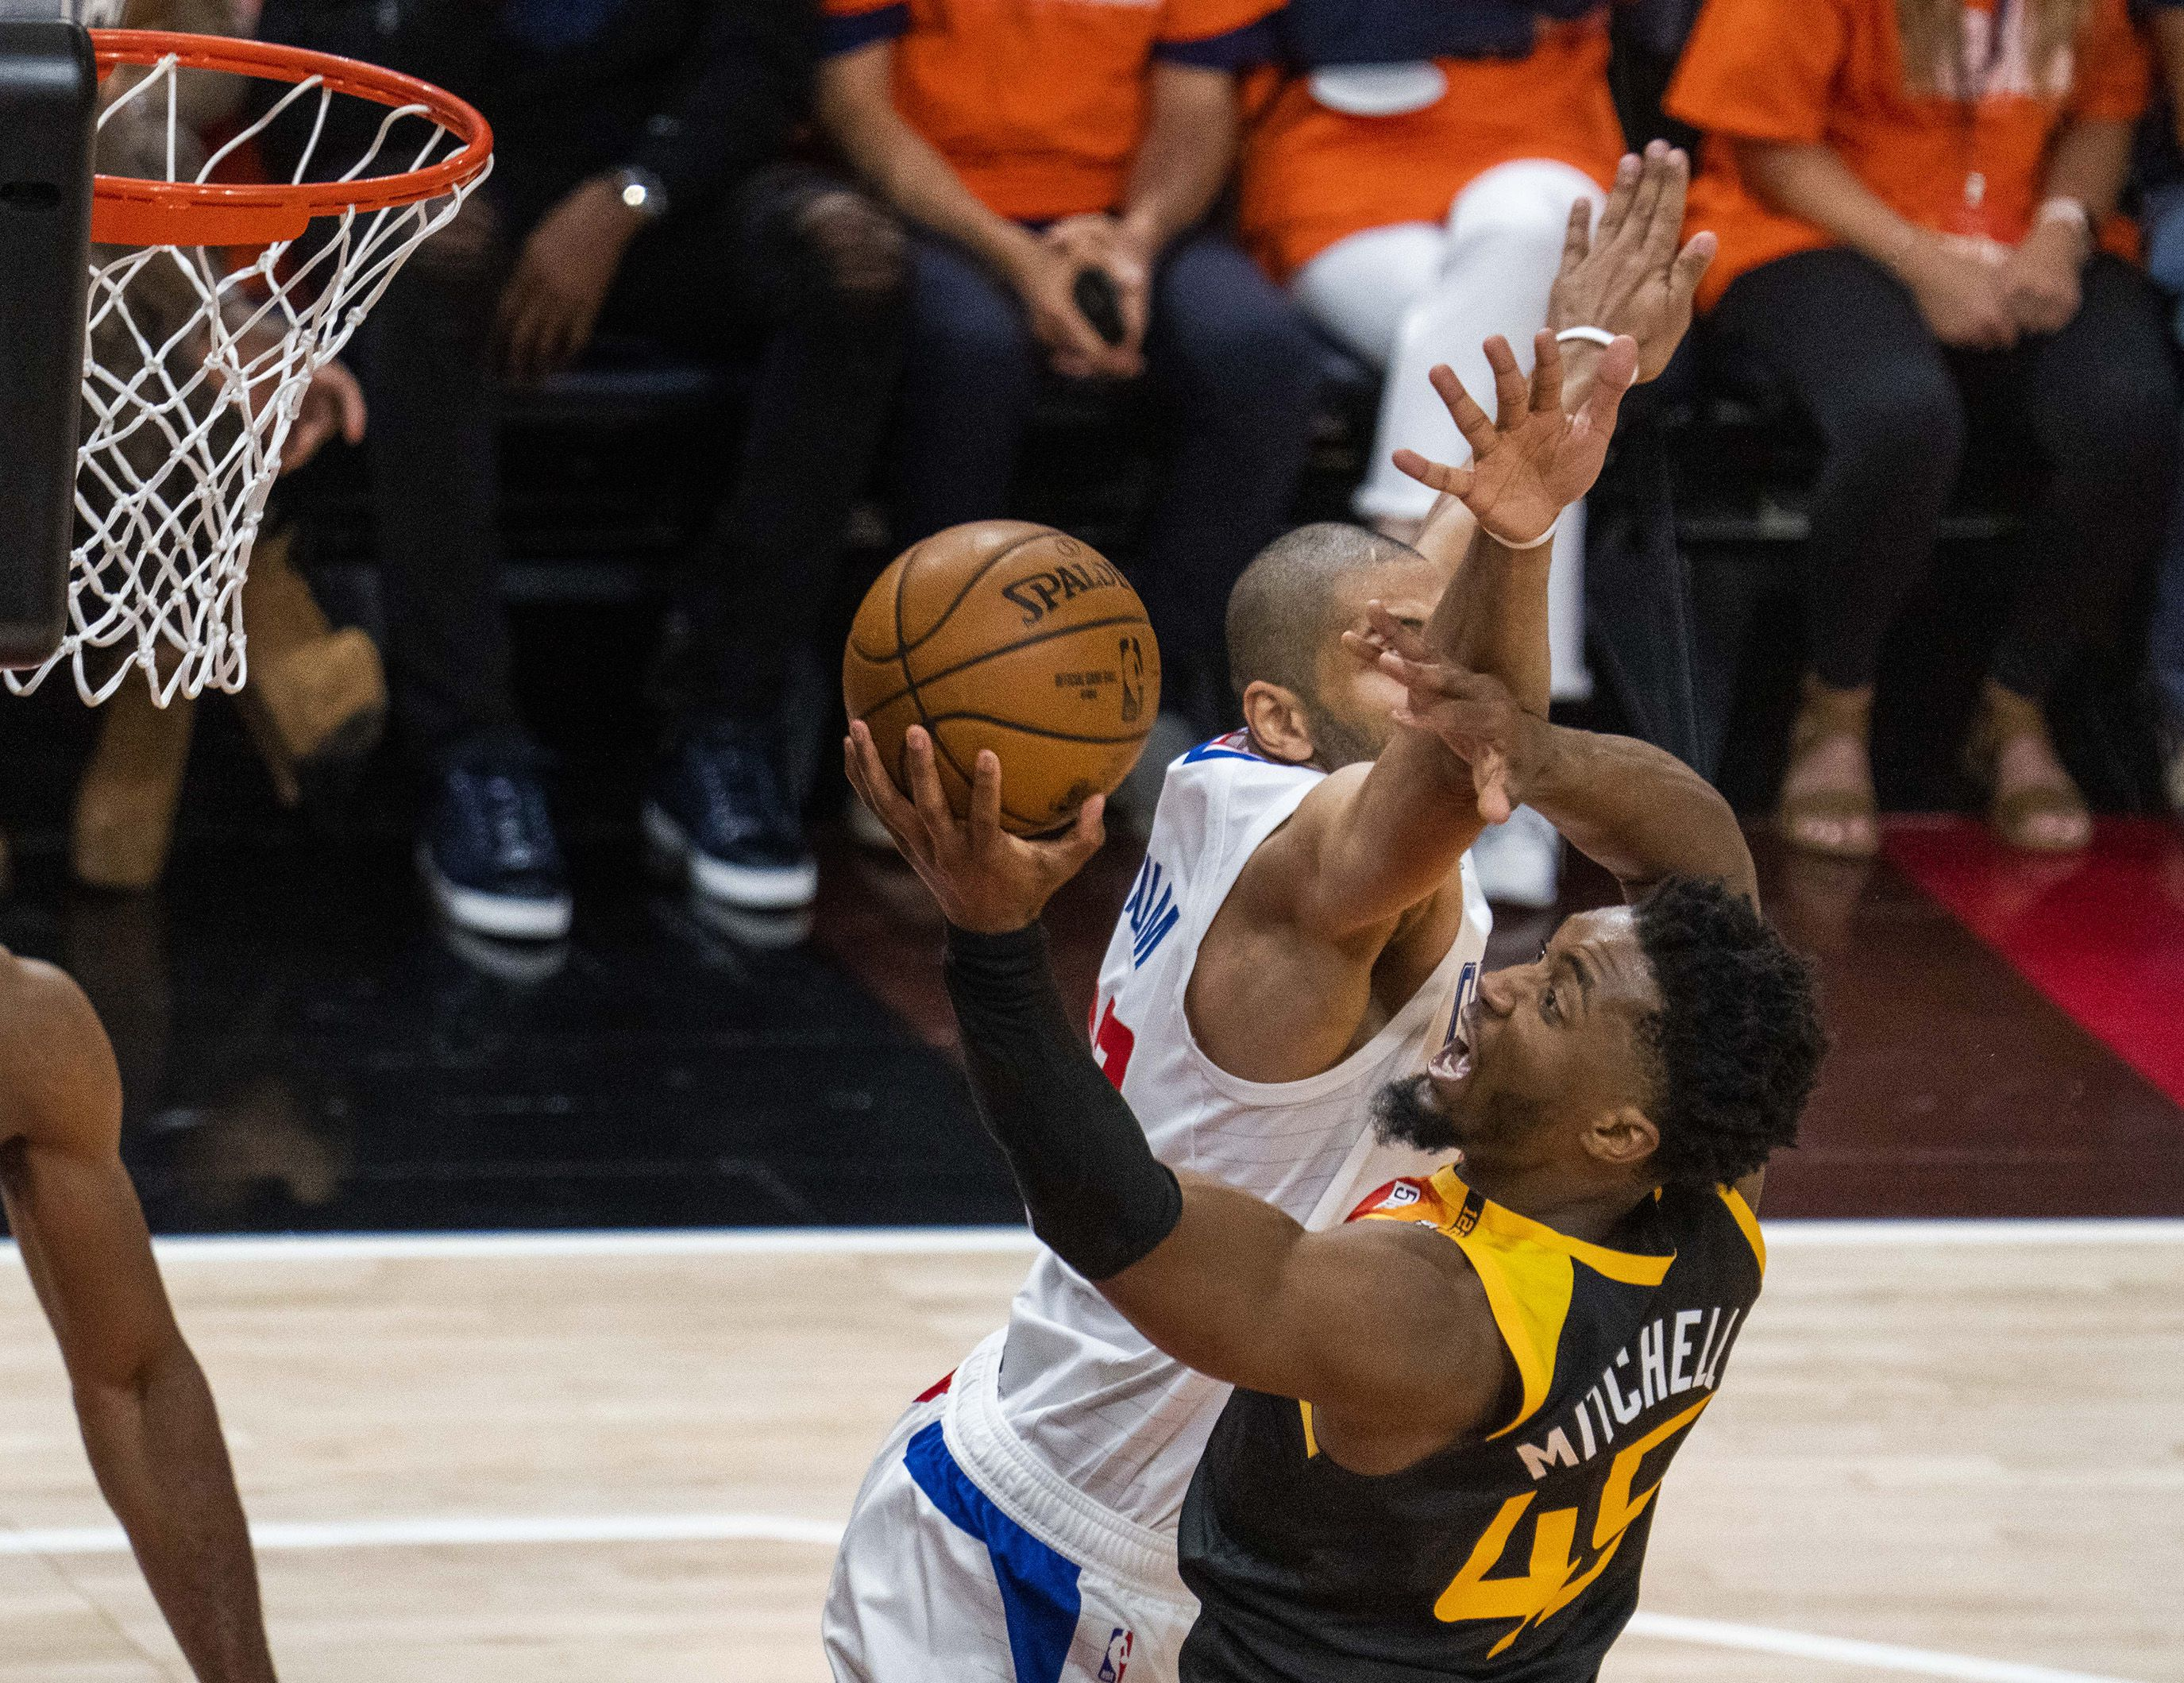 (Rick Egan | The Salt Lake Tribune) Utah  guard Donovan Mitchell (45) shoots as LA Clippers forward Nicolas Batum (33) defends, in second round playoff action in game 2 between the Utah Jazz and the LA Clippers, at Vivint Arena, on Thursday, June 10, 2021.